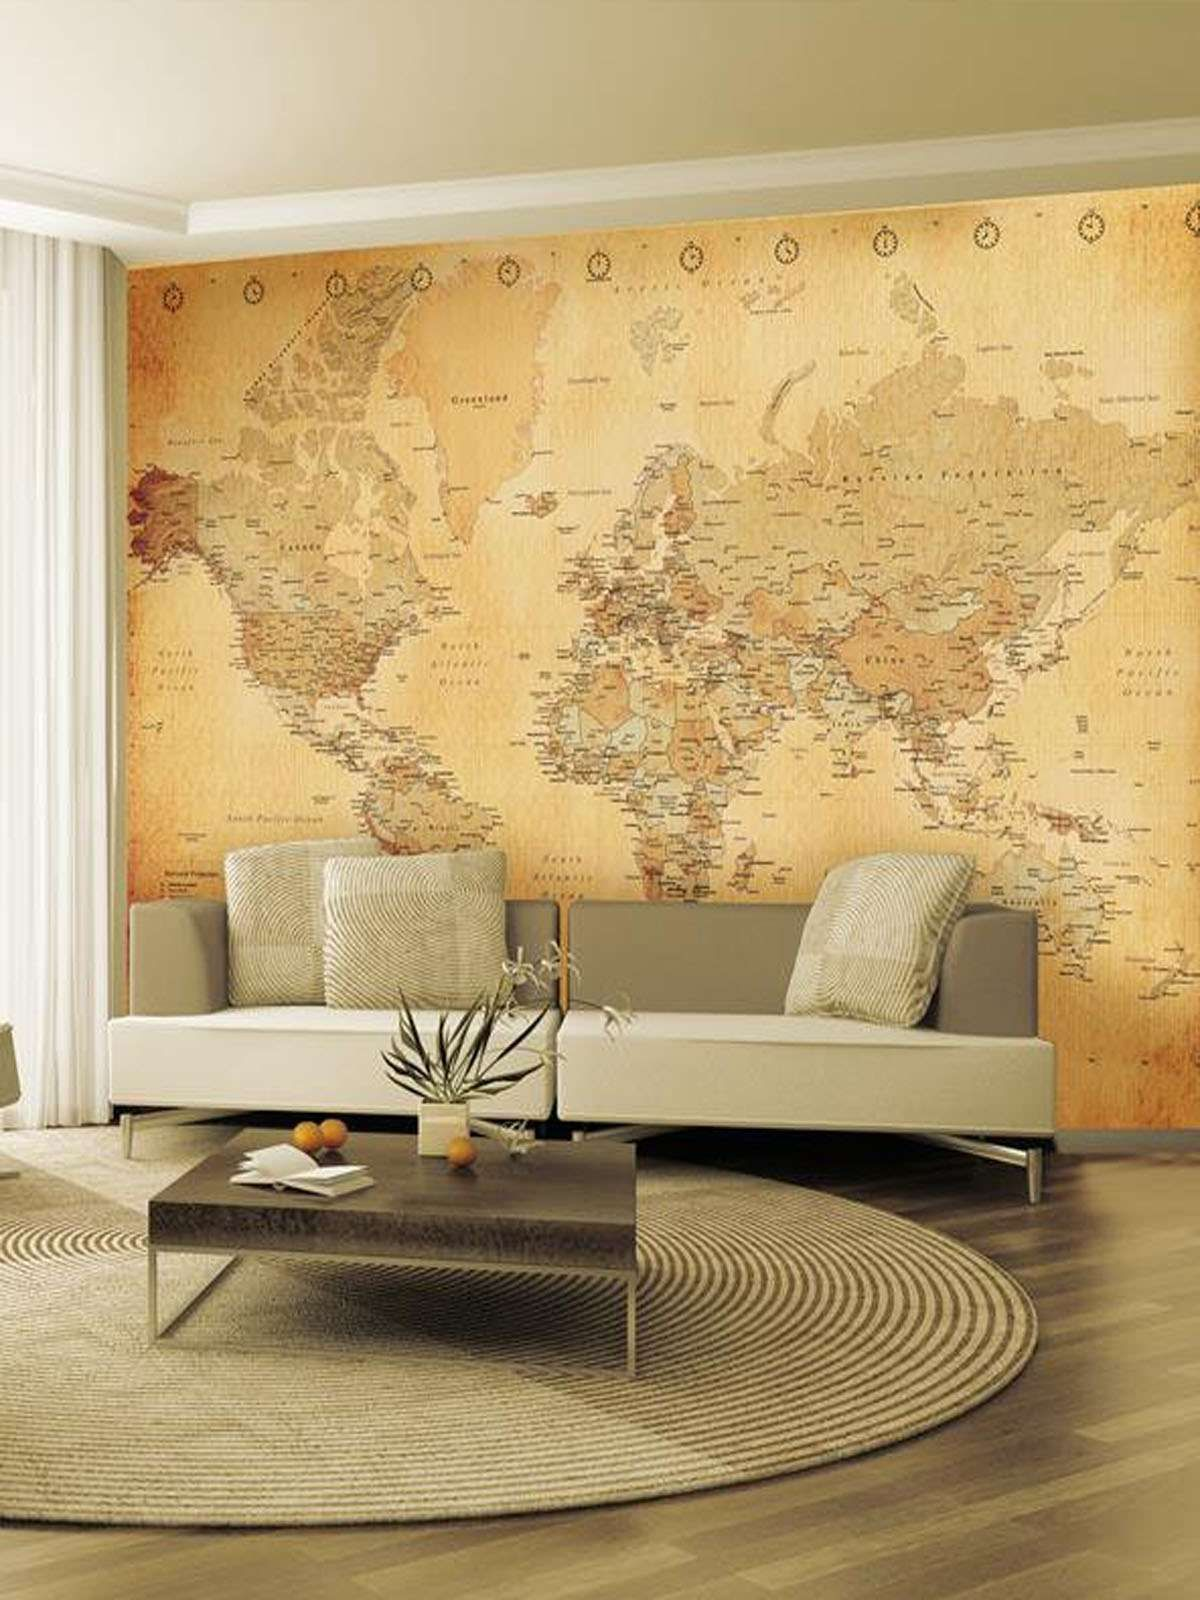 Wall Mural For Living Room Old Map Giant Easy Hang Wall Mural Diy Floors Walls Ceilings